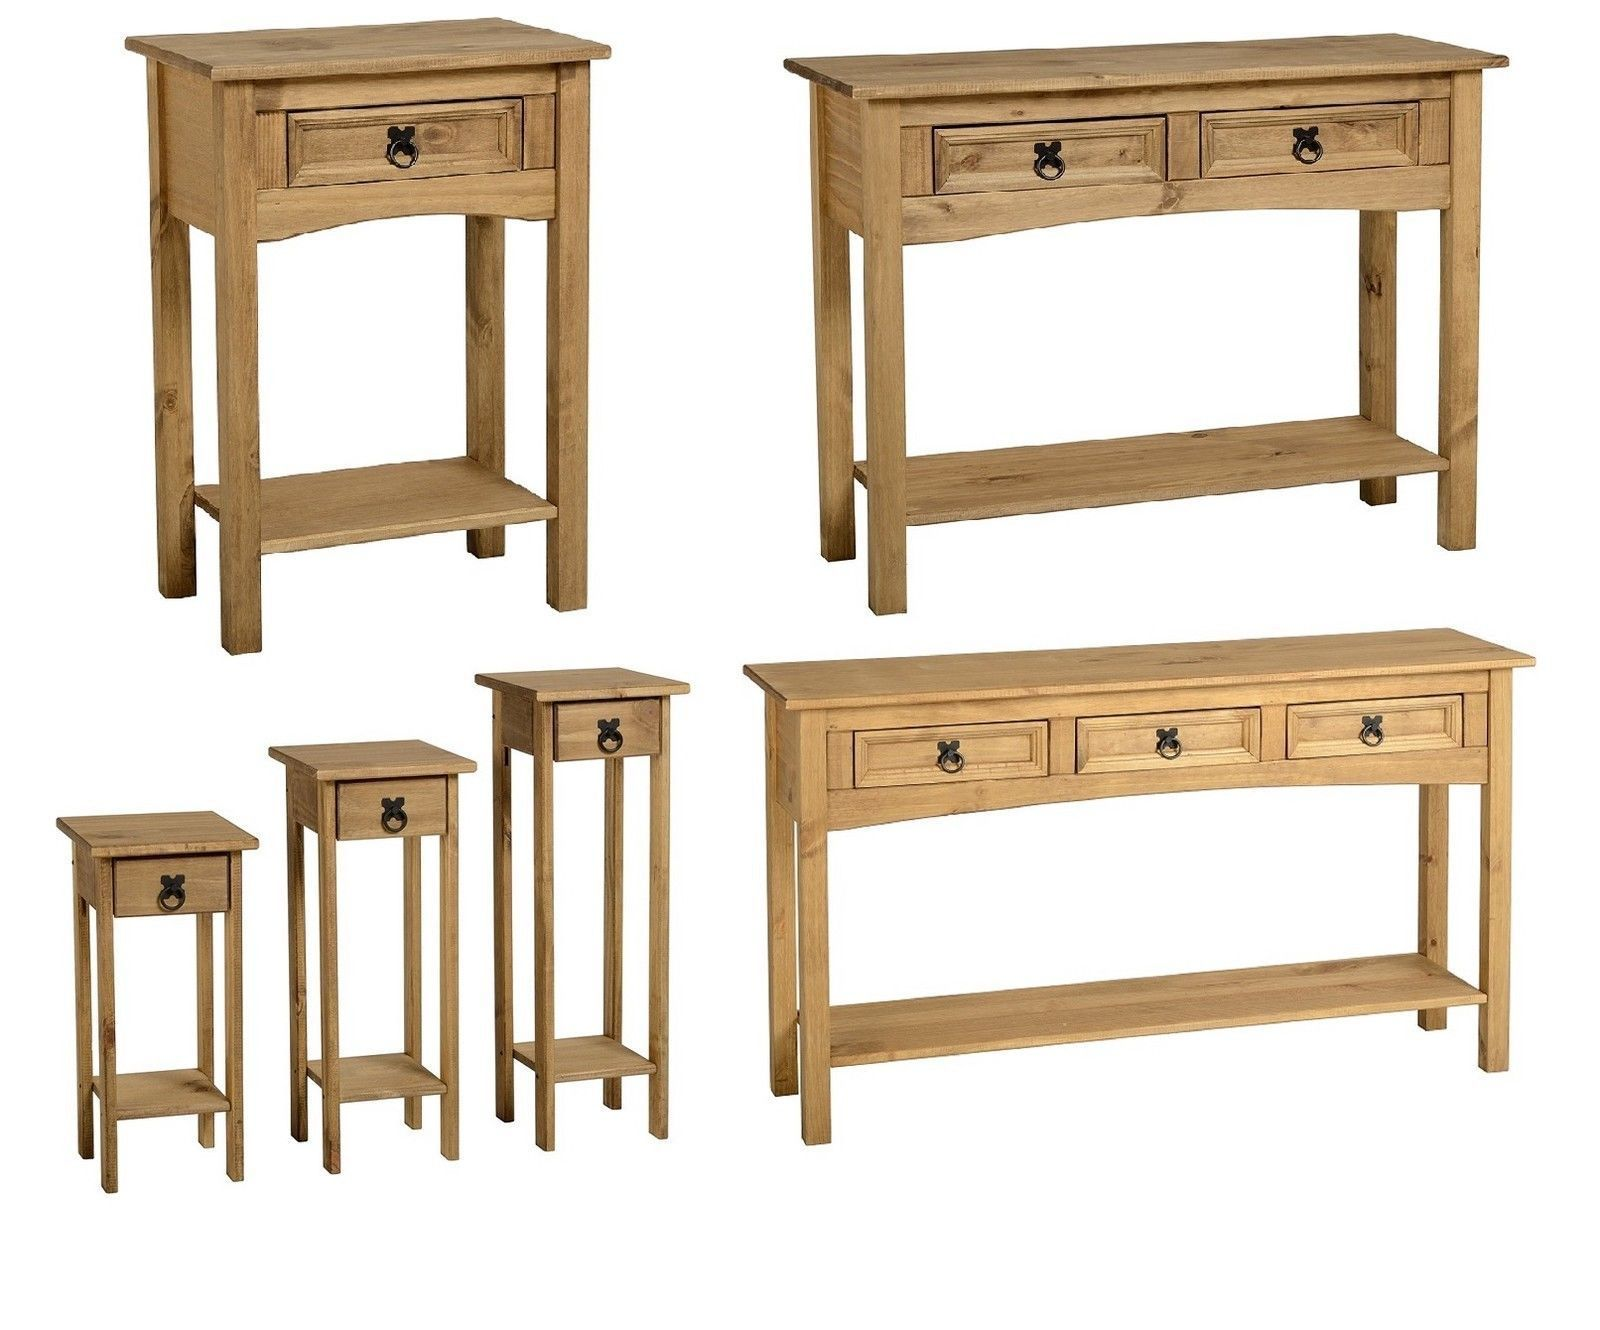 Corona pine console tables with storage shelves and drawers mexican design ebay - Pine sofa table with drawers ...